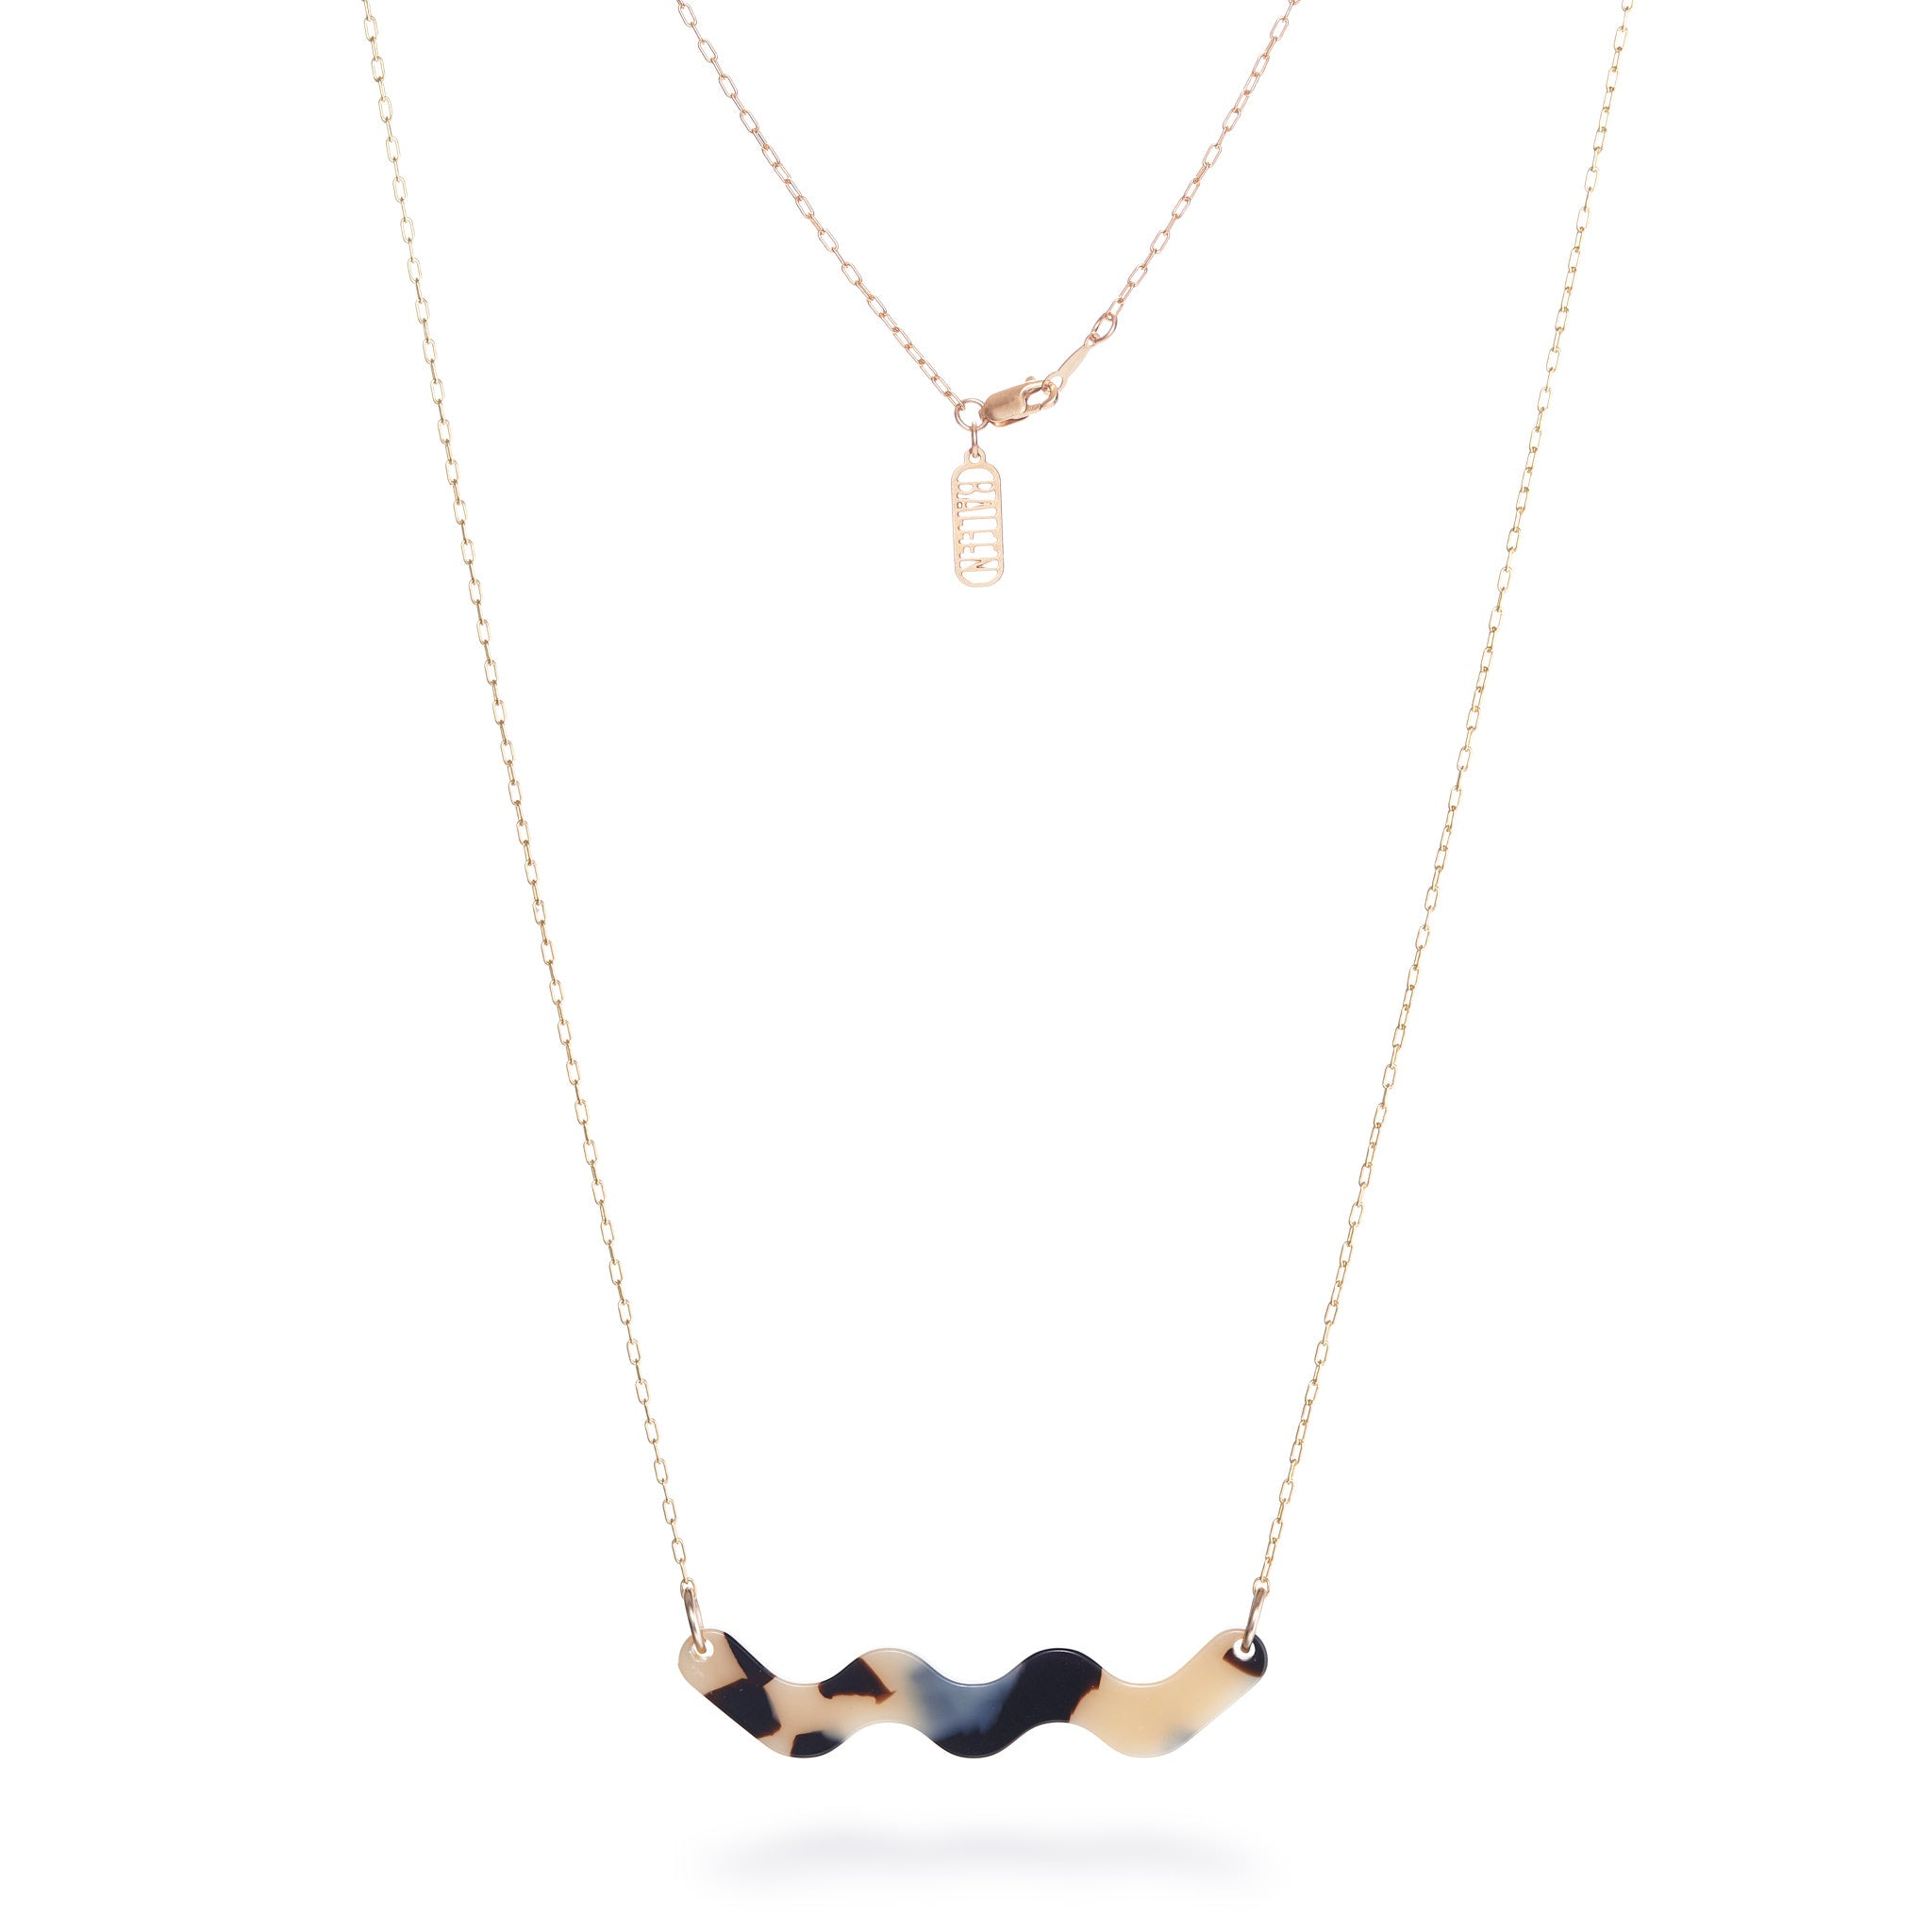 Motion Necklace - Beige Tort